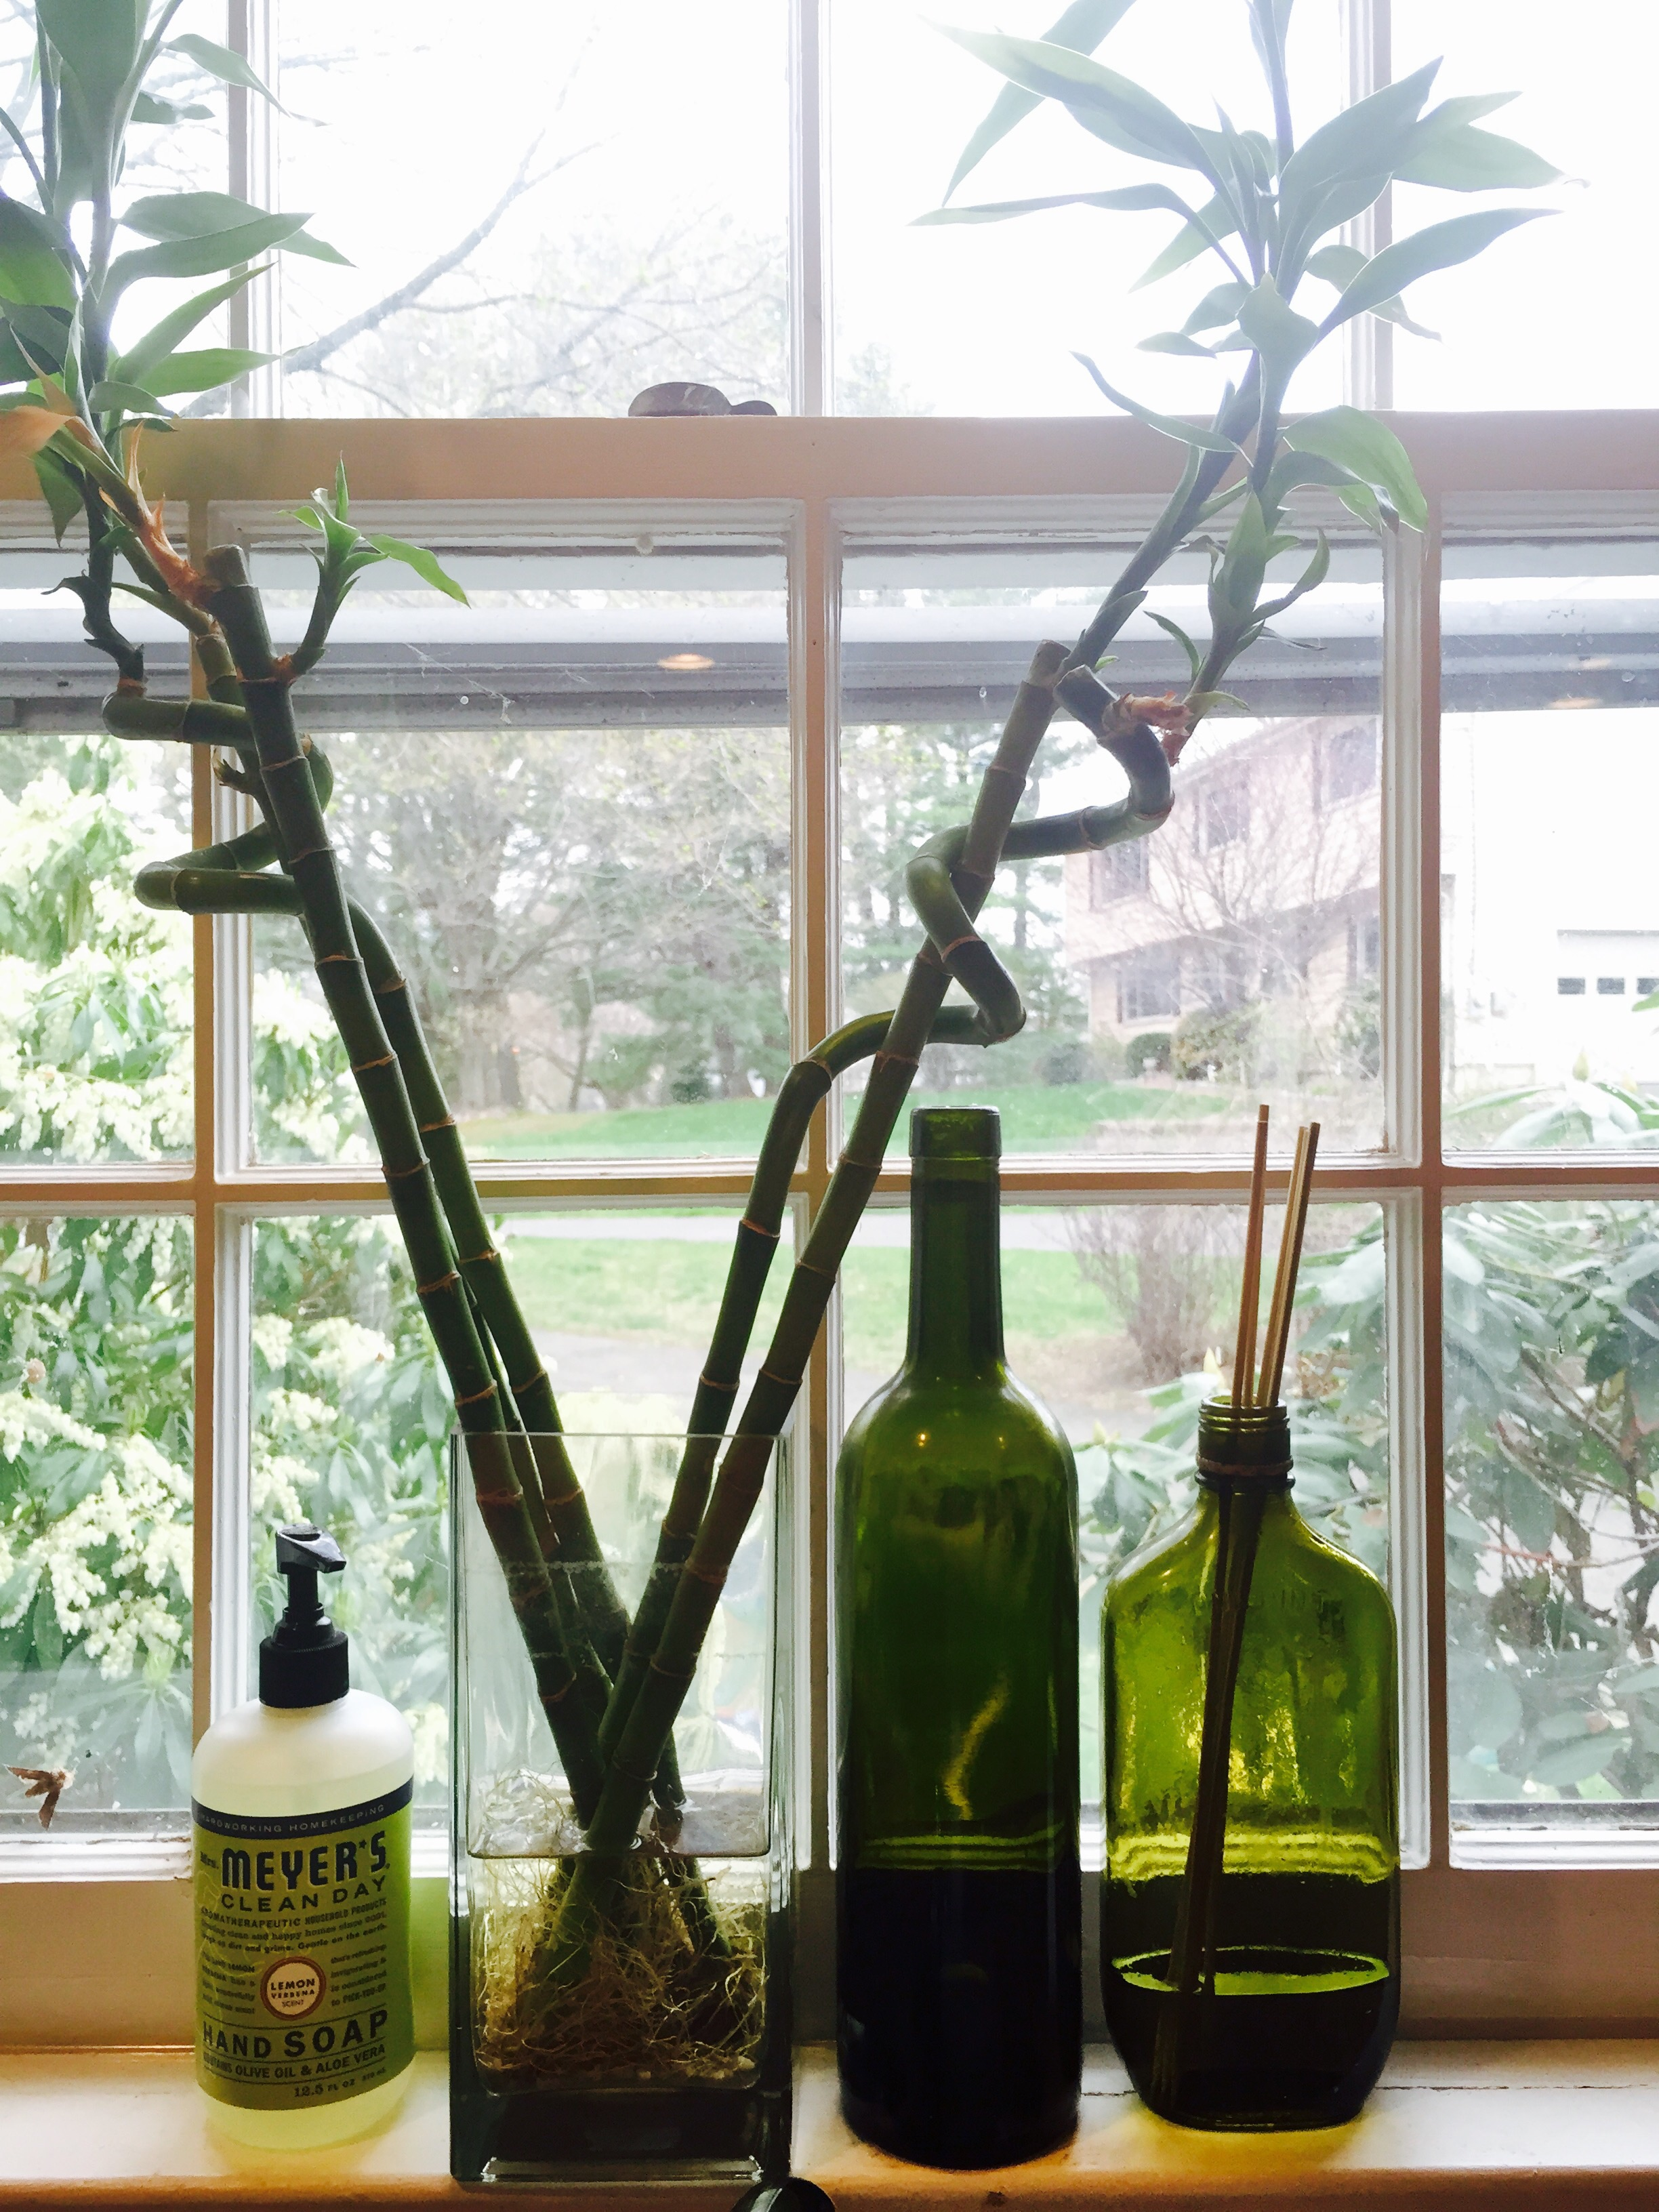 How to make your own reed diffusers. A vintage liquor bottle sits on my kitchen windowsill and emits the most wonderful of aromas. Image property of The Entertaining House.